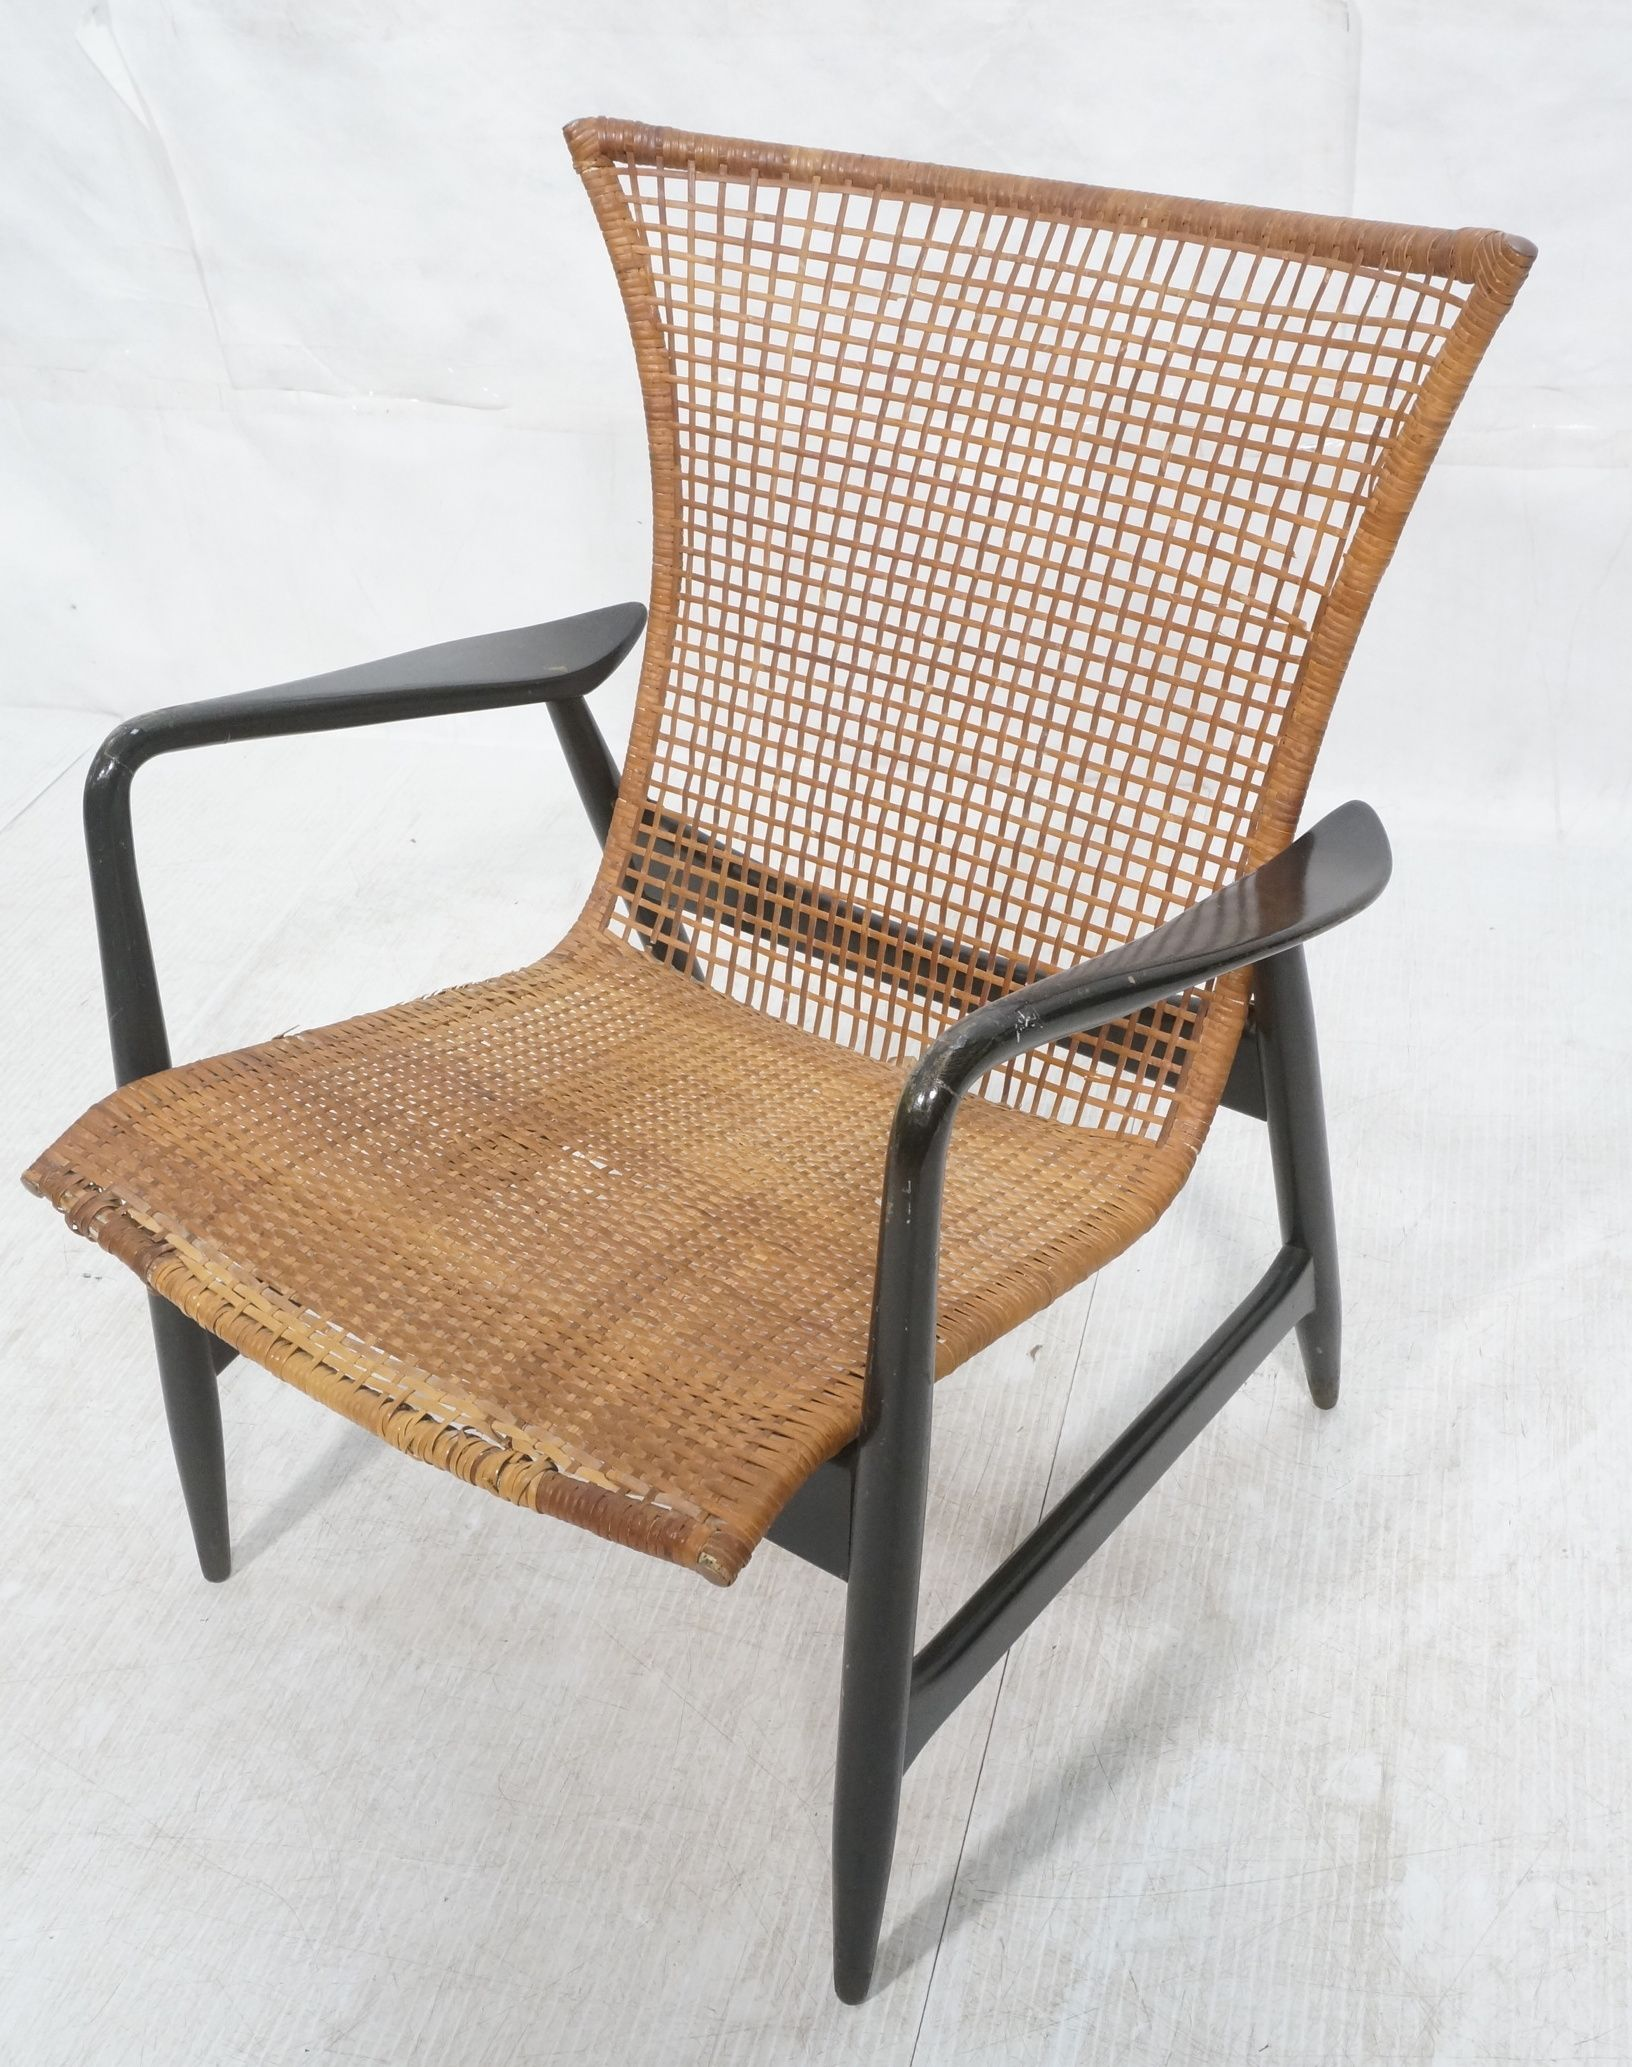 Stupendous Pin On Mcm Lounge Chairs Wood 1930 1980 Caraccident5 Cool Chair Designs And Ideas Caraccident5Info